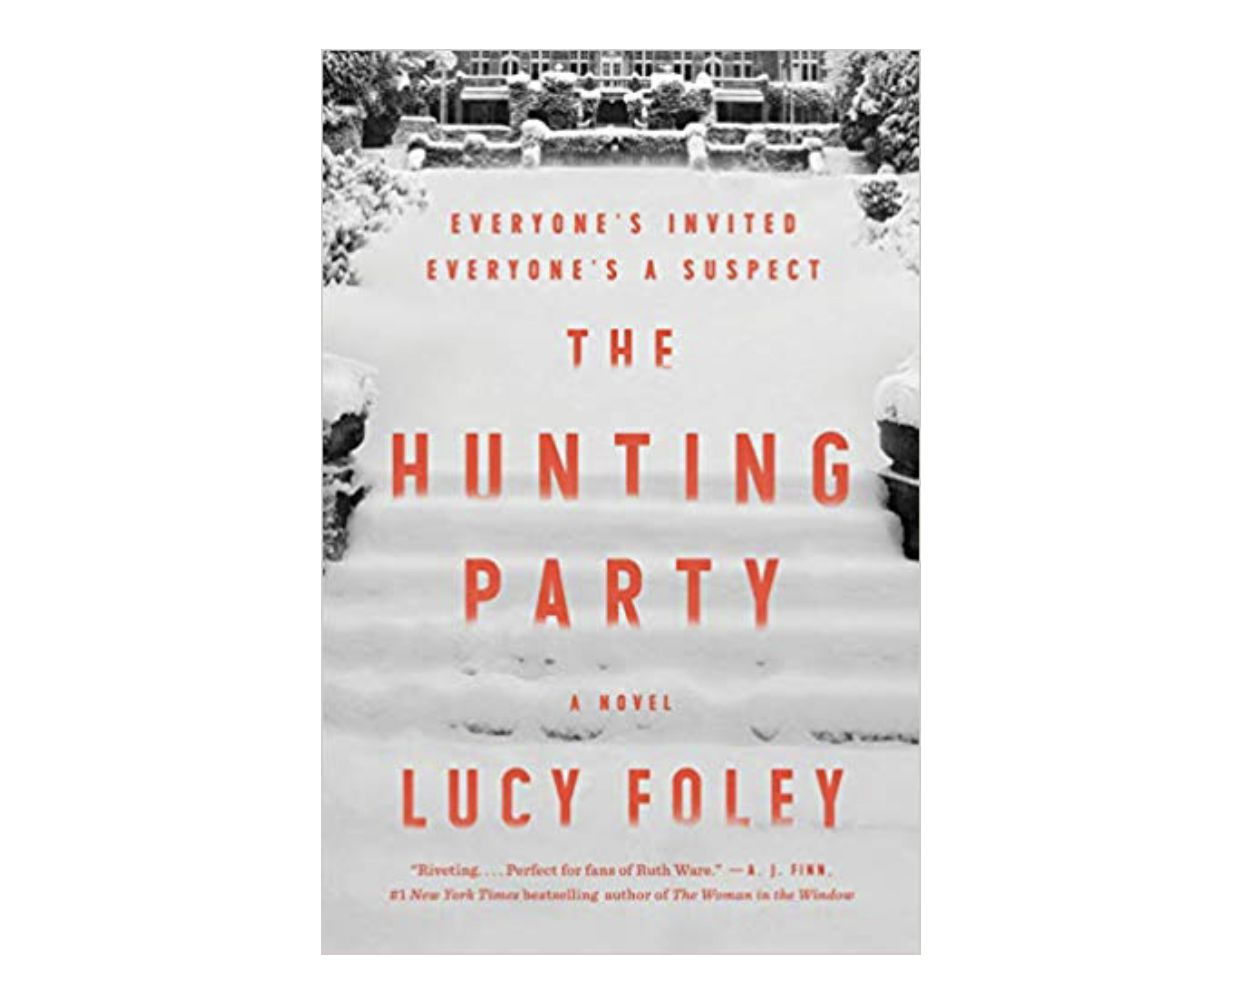 21++ The invitation book lucy foley information